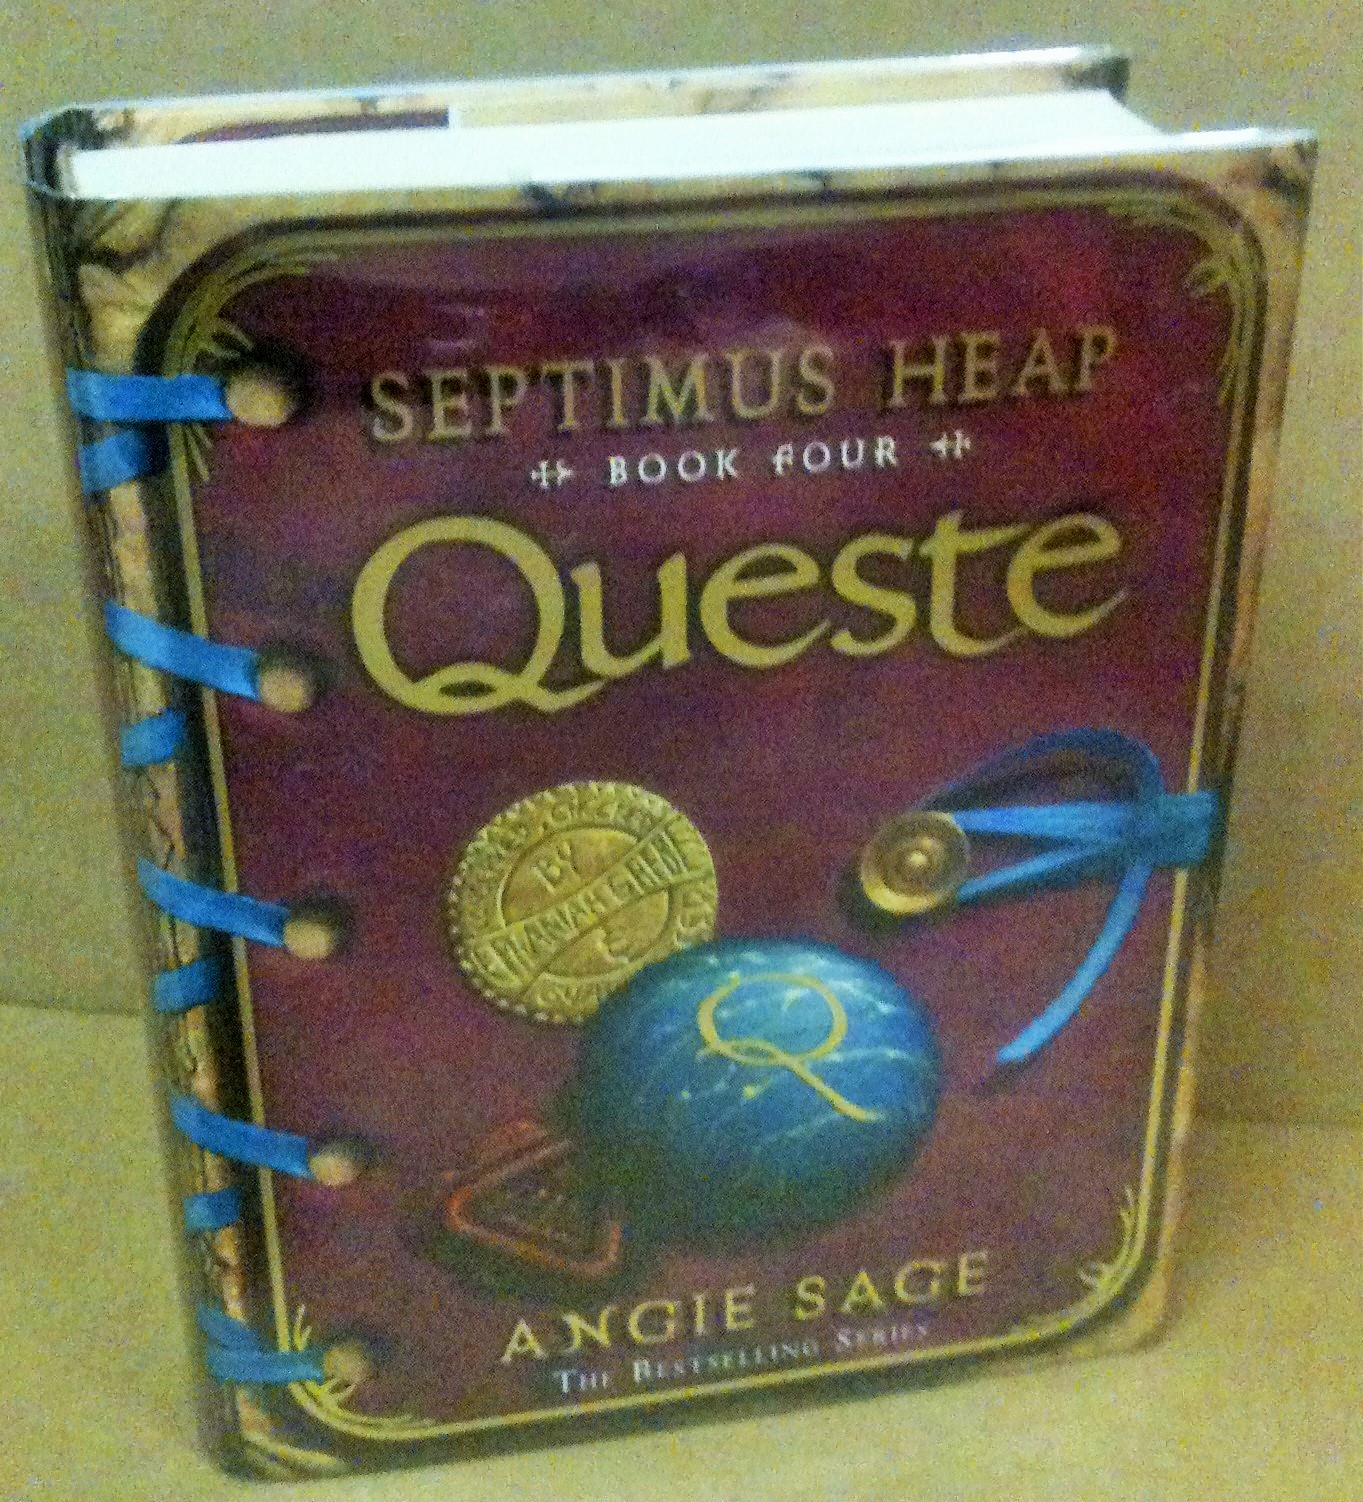 Image for Queste  Septimus Heap Book Four  [ an Unread SIGNED Fine First printing]